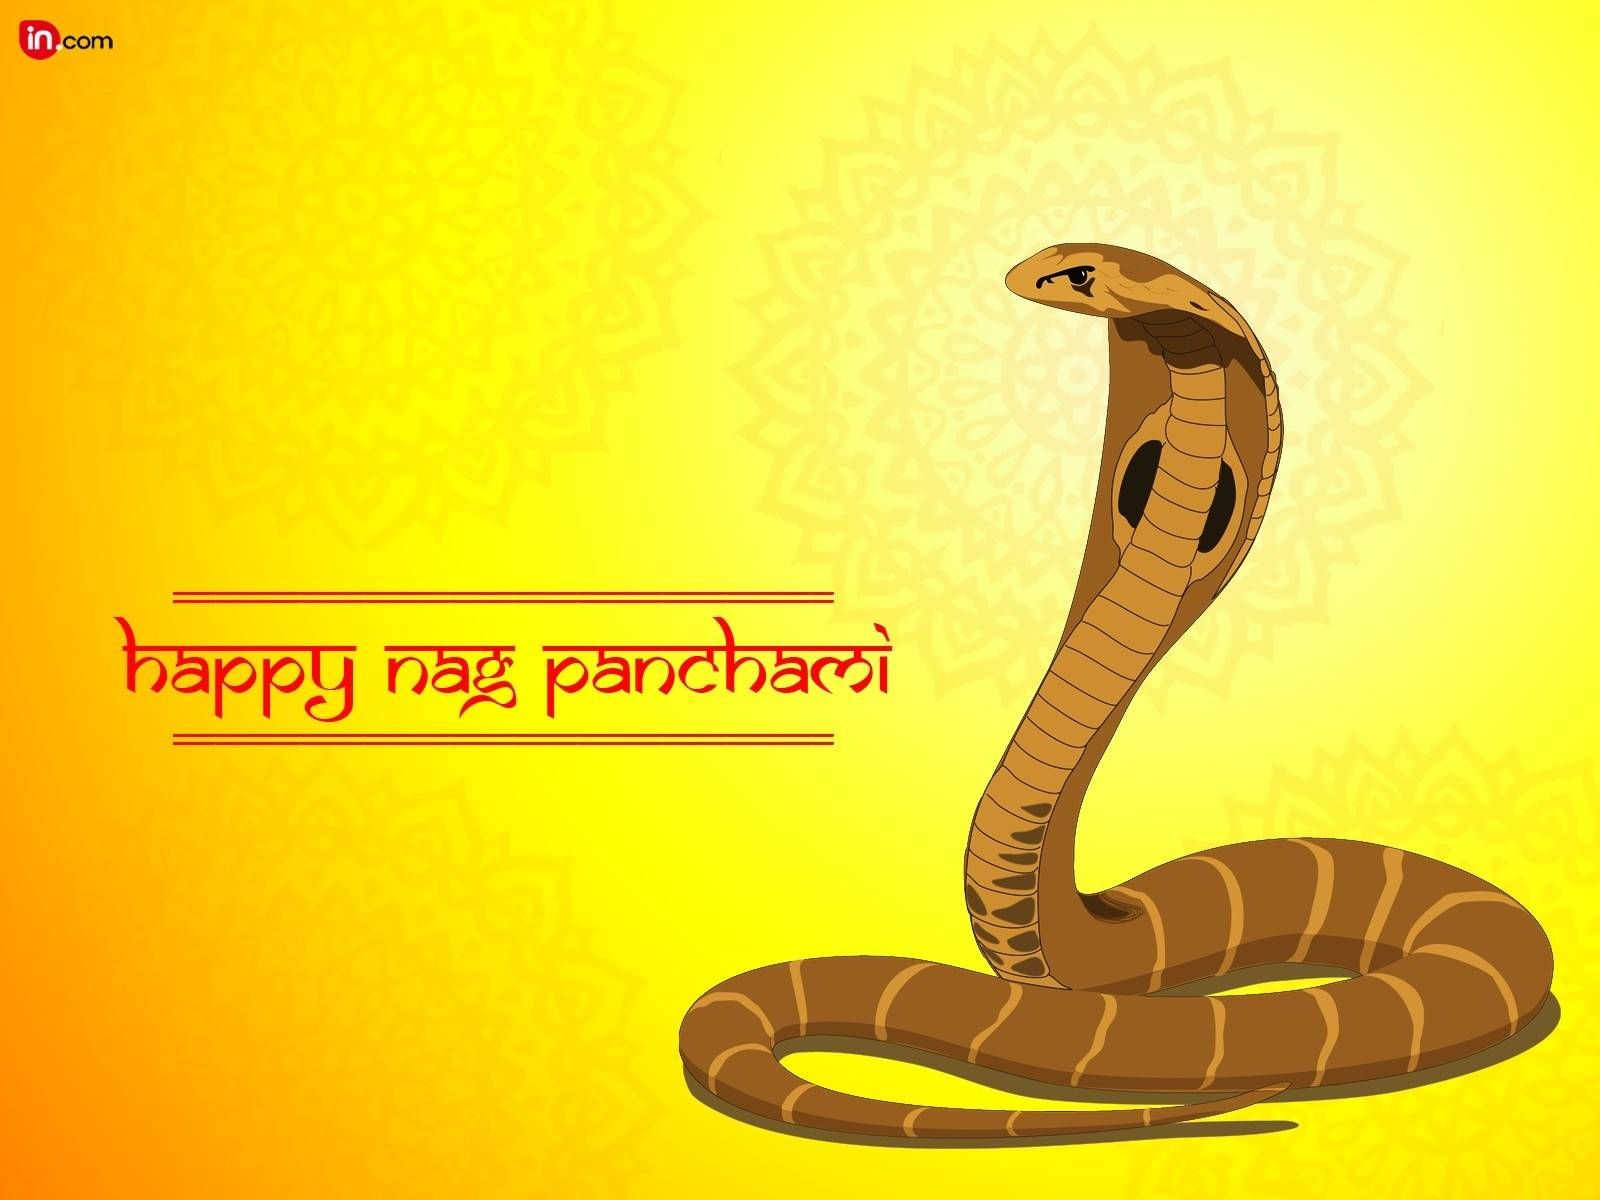 50 Best Nag Panchami Wish Pictures And Photos   All